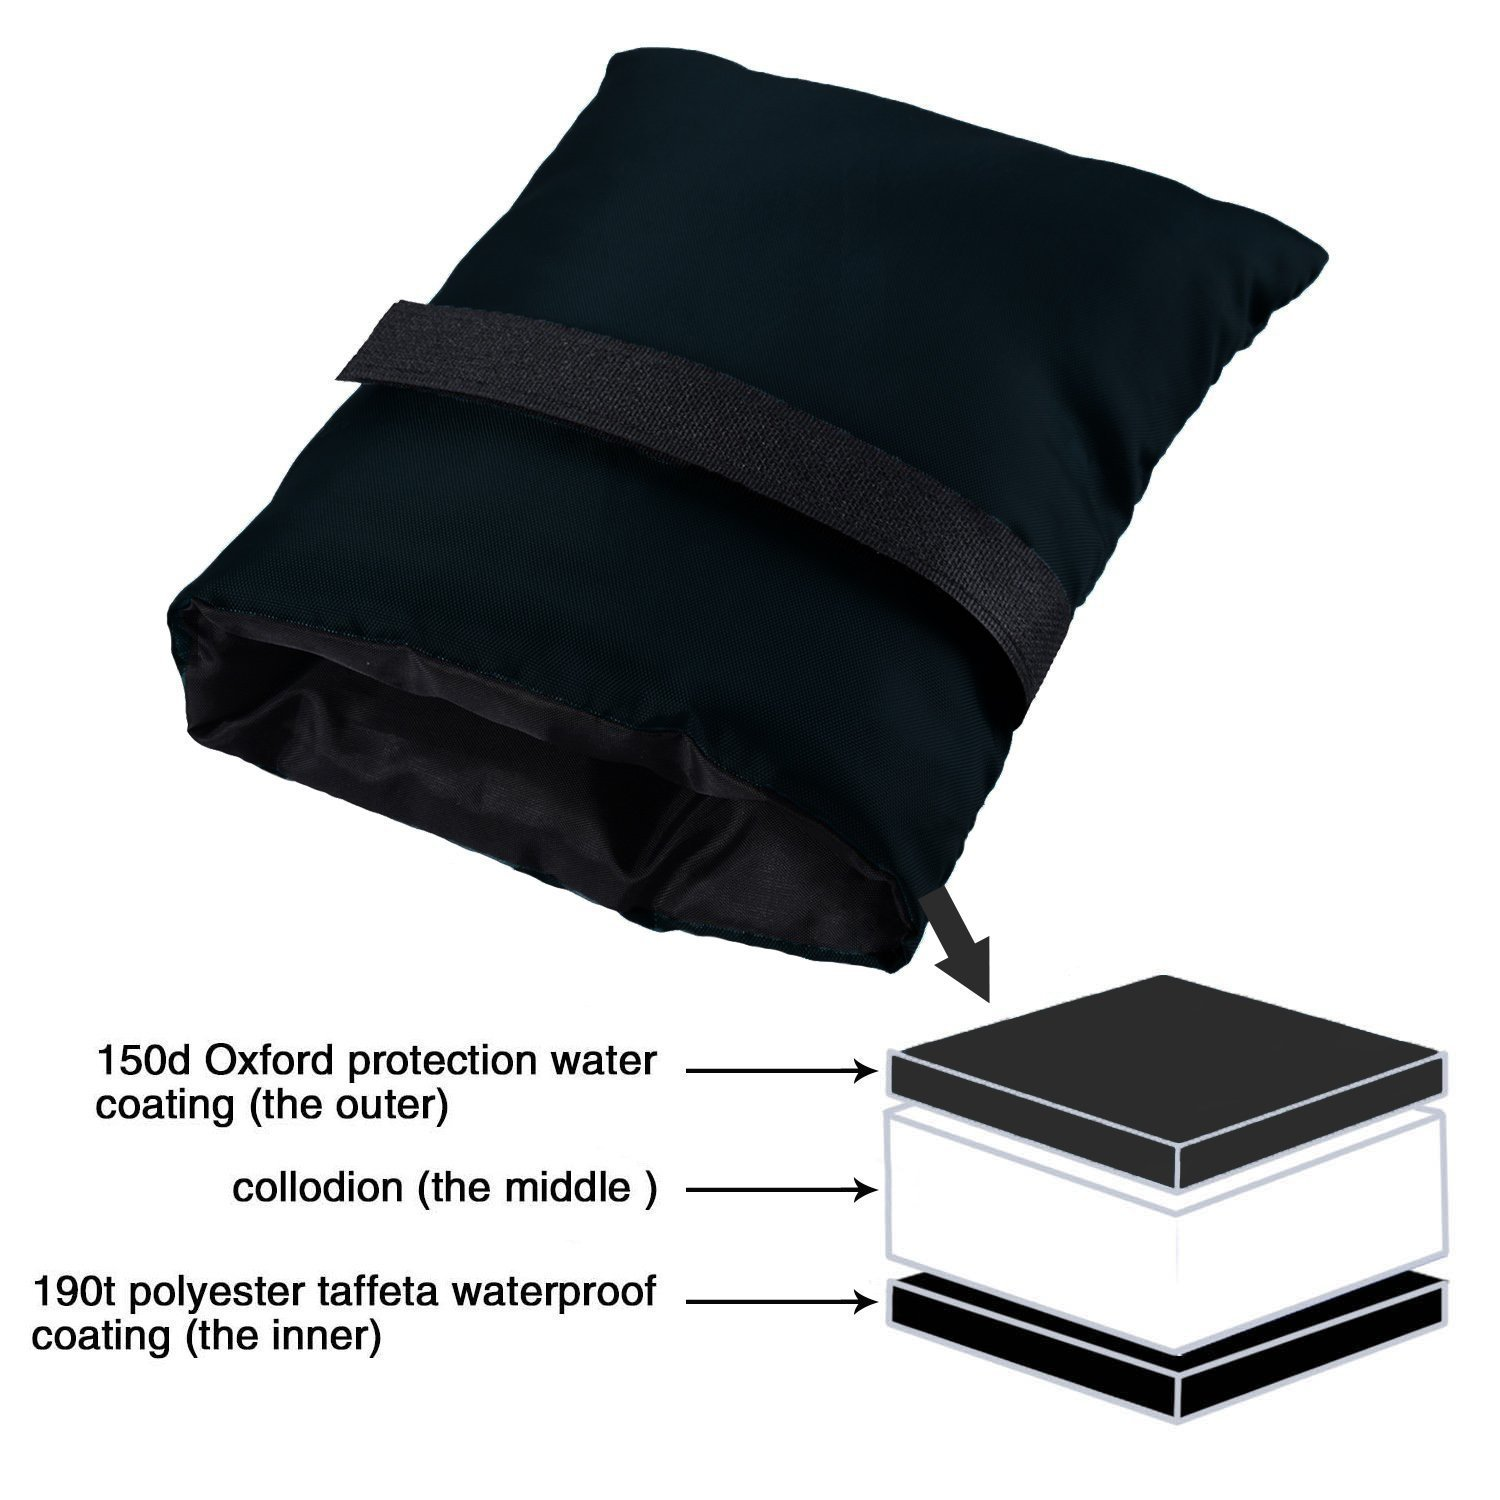 Outside Tap Cover//Spigot Cover//Faucet Protector//Faucet Socks for Freeze Protection Outdoor Faucet Covers for Winter Black - 2 Pack Giveme5 2 Pack Faucet Cover